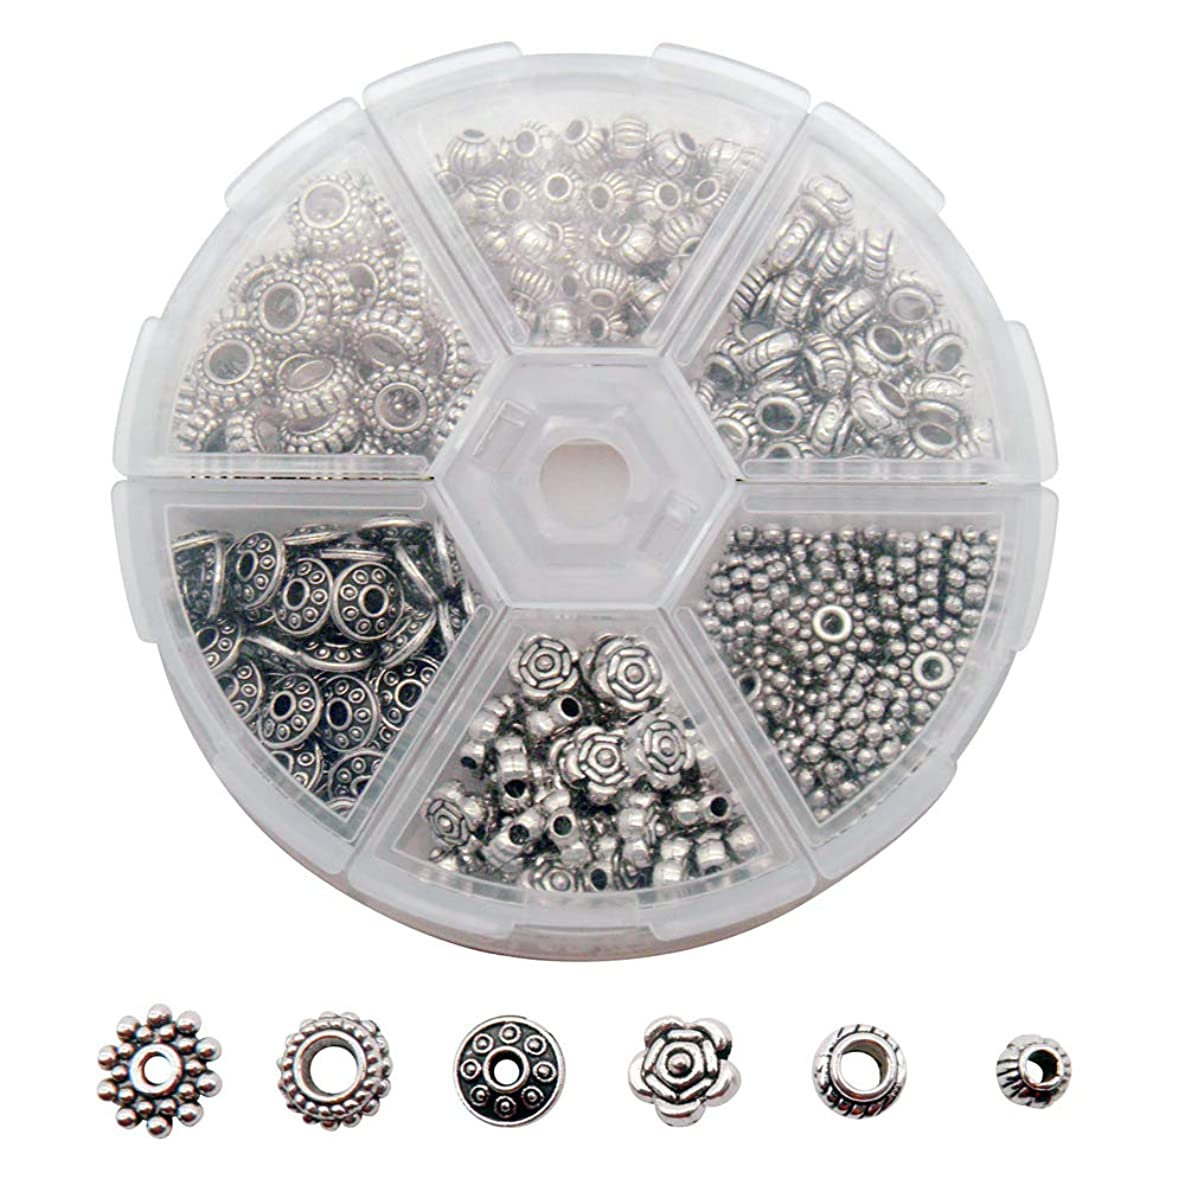 300 PCS Tibetan and Bali Silver Finish Metal Alloy Spacer Beads for Jewelry Making Findings 6 Style Look Bulk Bead Aeeortment Great for DIY, Bracelets, Necklaces and Crafting